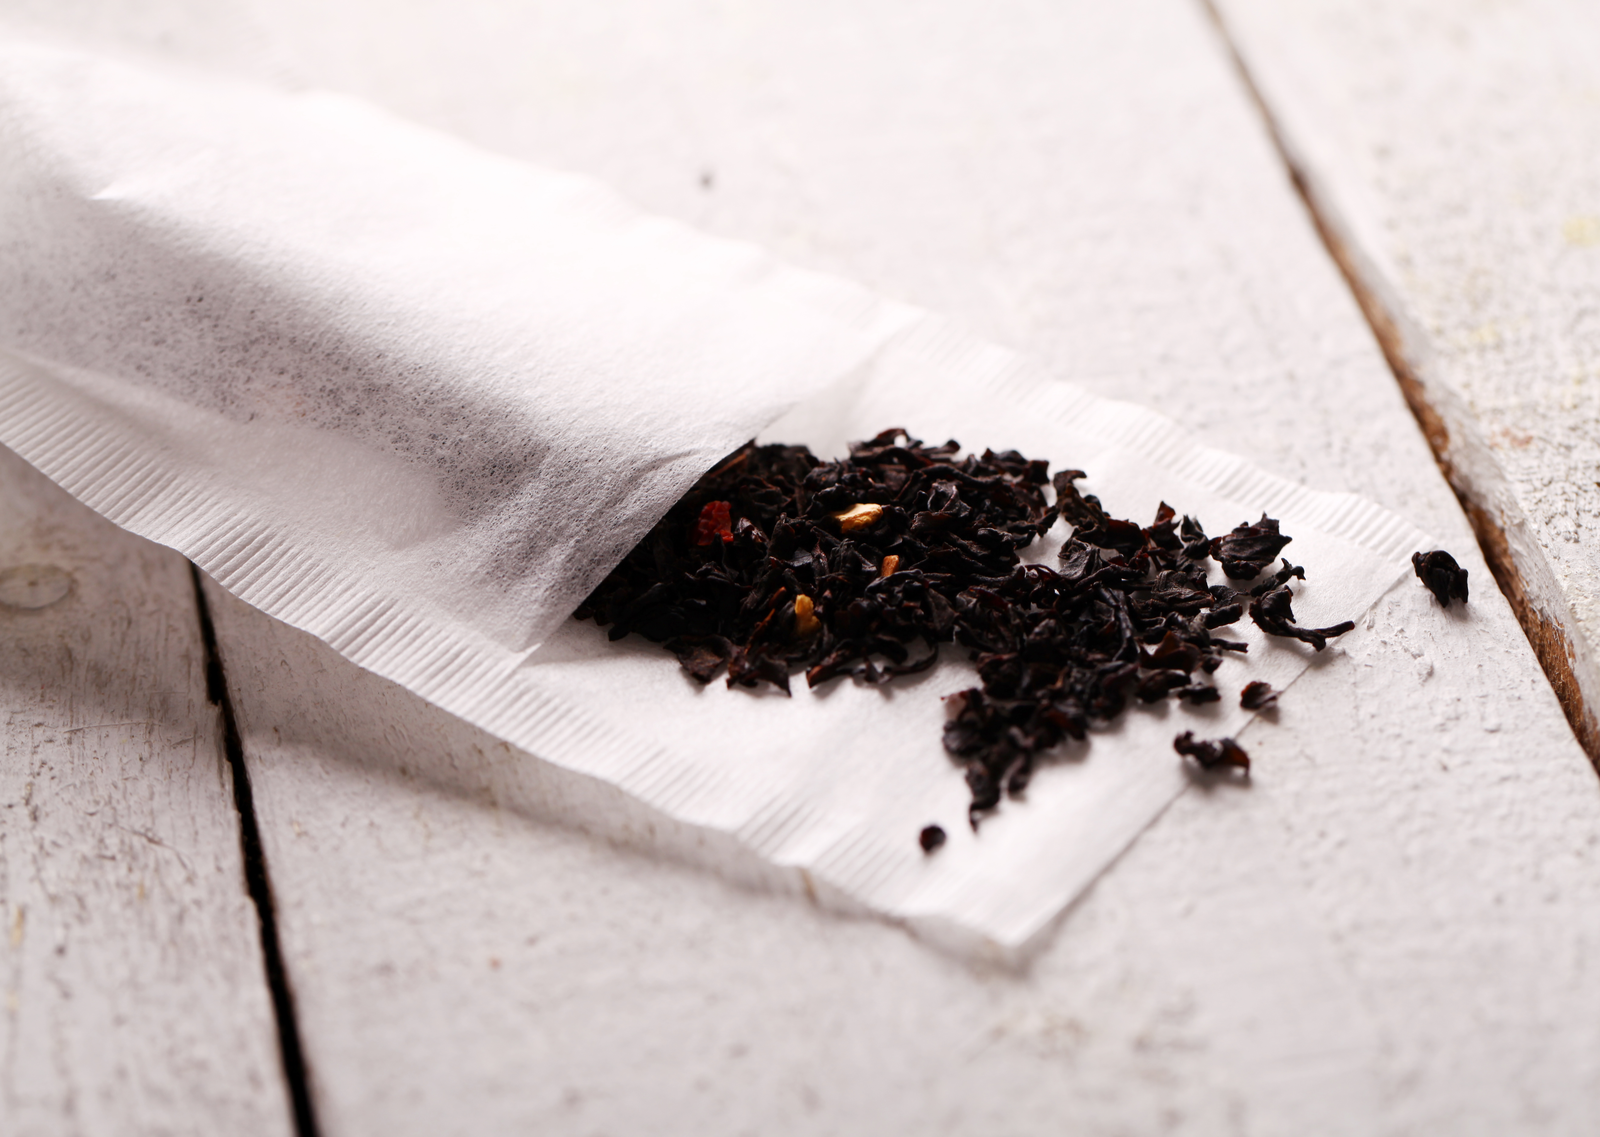 Spices | How to Brew Loose Leaf Tea: Everything You Need To Know